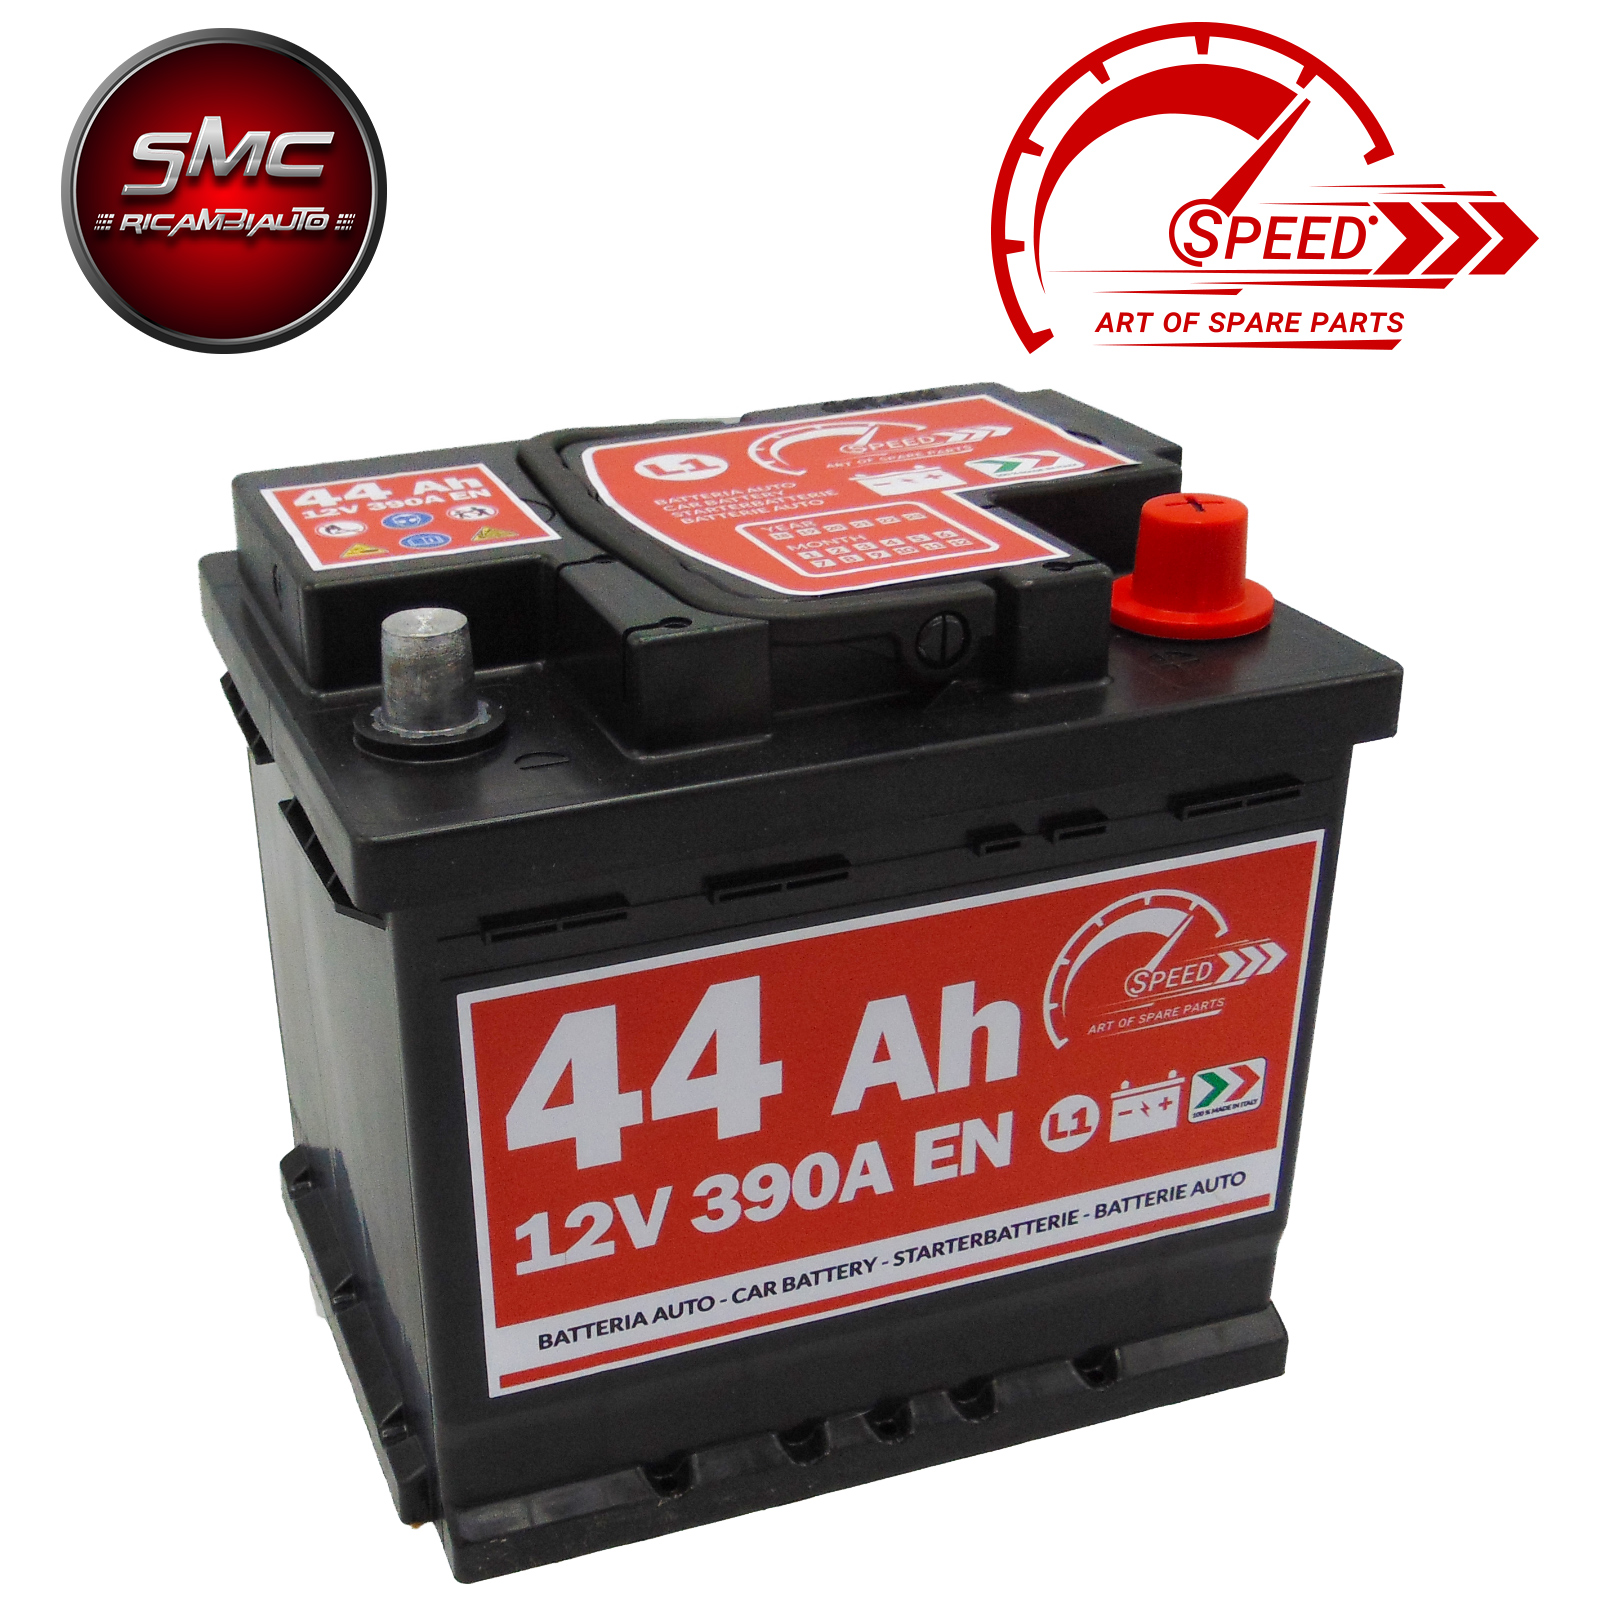 BATTERIA SPEED L144 44AH 390A 12V